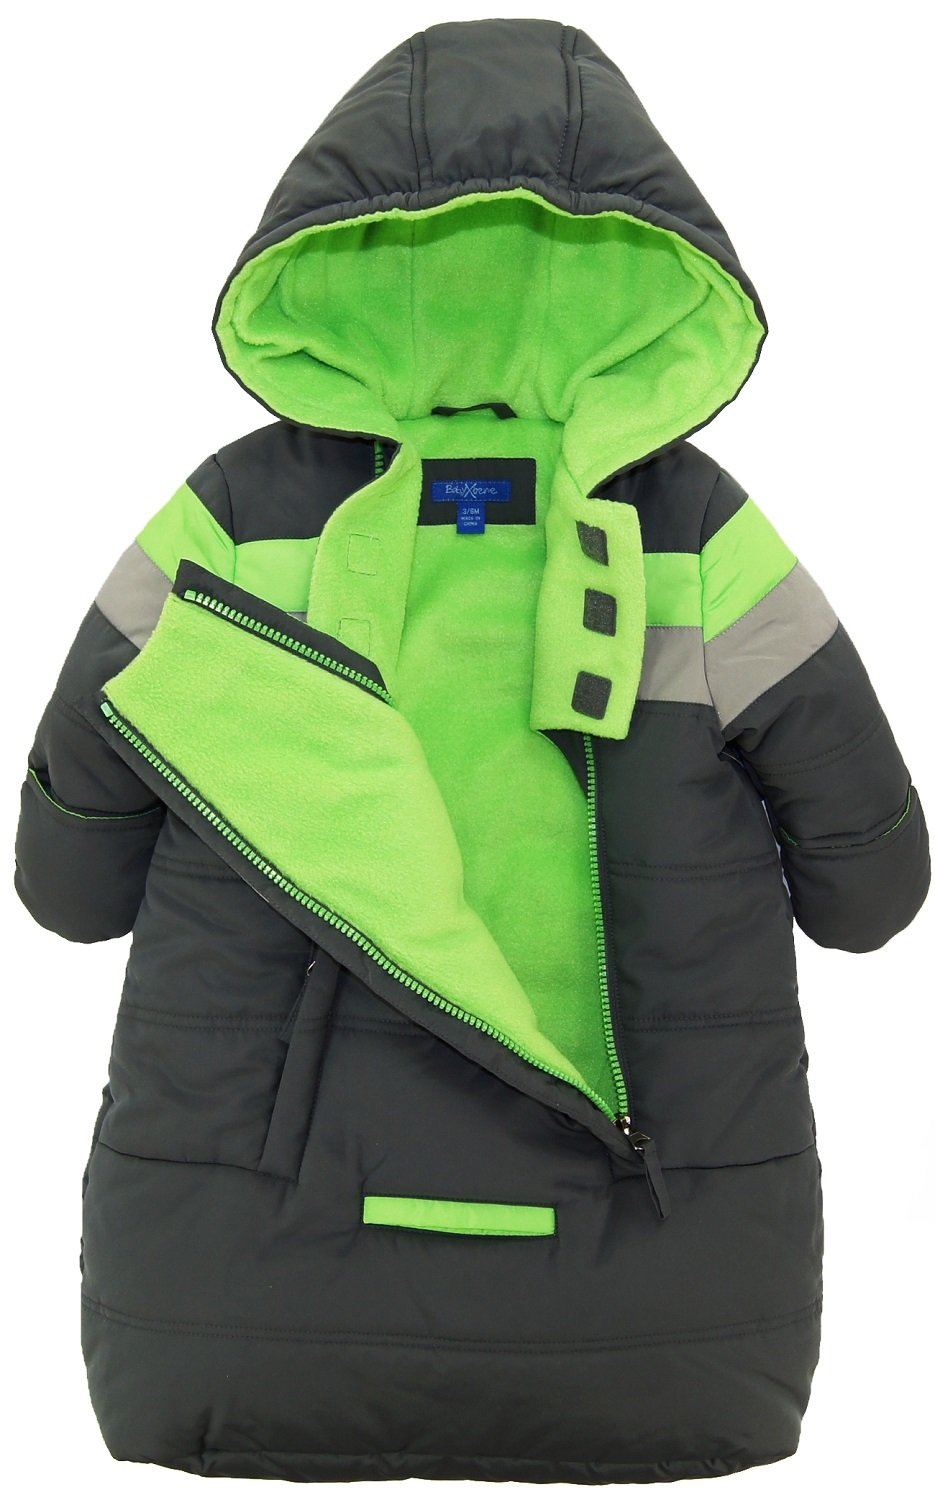 iXtreme Baby Boys Snowsuit Colorblock Stripes Puffer Carbag, Grey, 3-6 Months by iXtreme (Image #2)